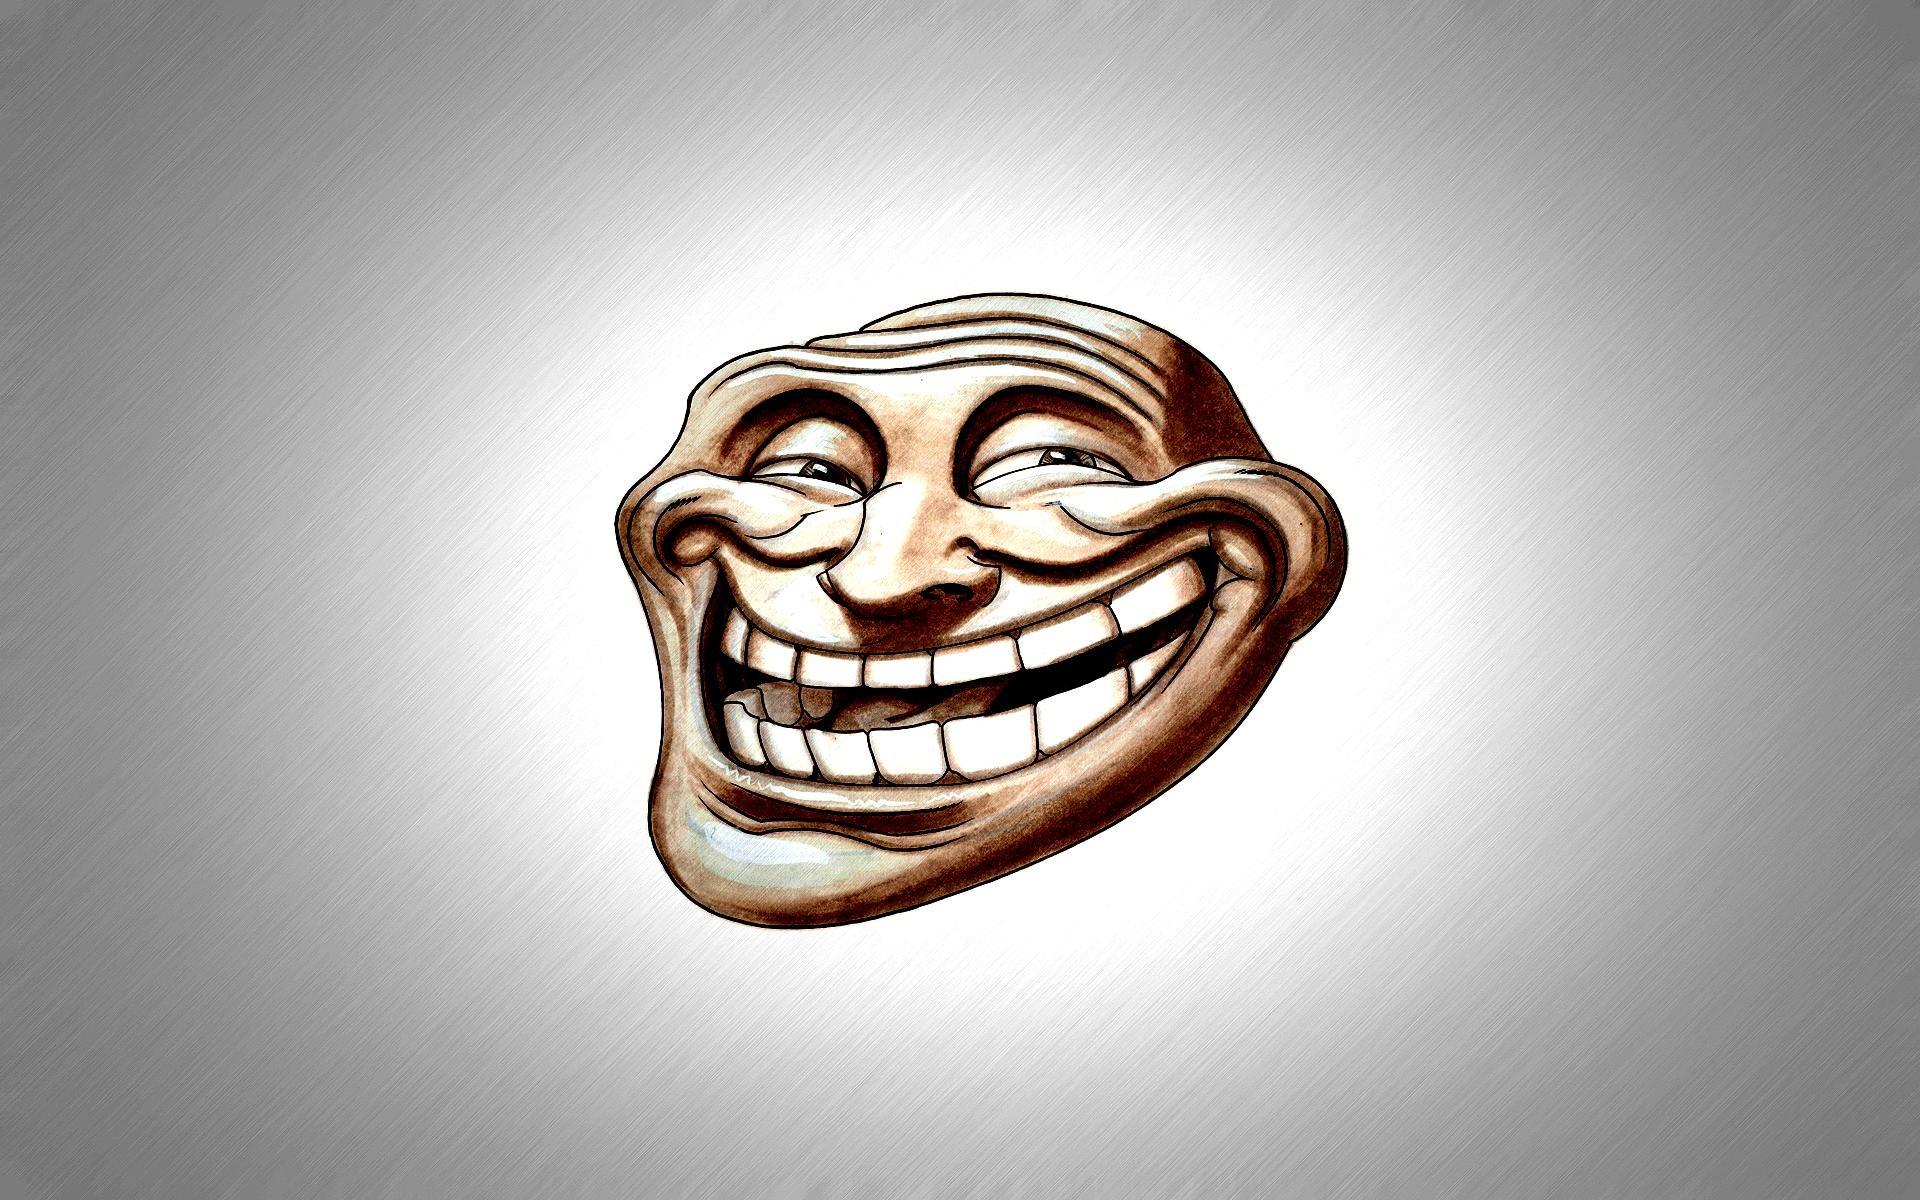 Troll face wallpaperp troll face mask wallpapers mexican troll troll face background voltagebd Choice Image